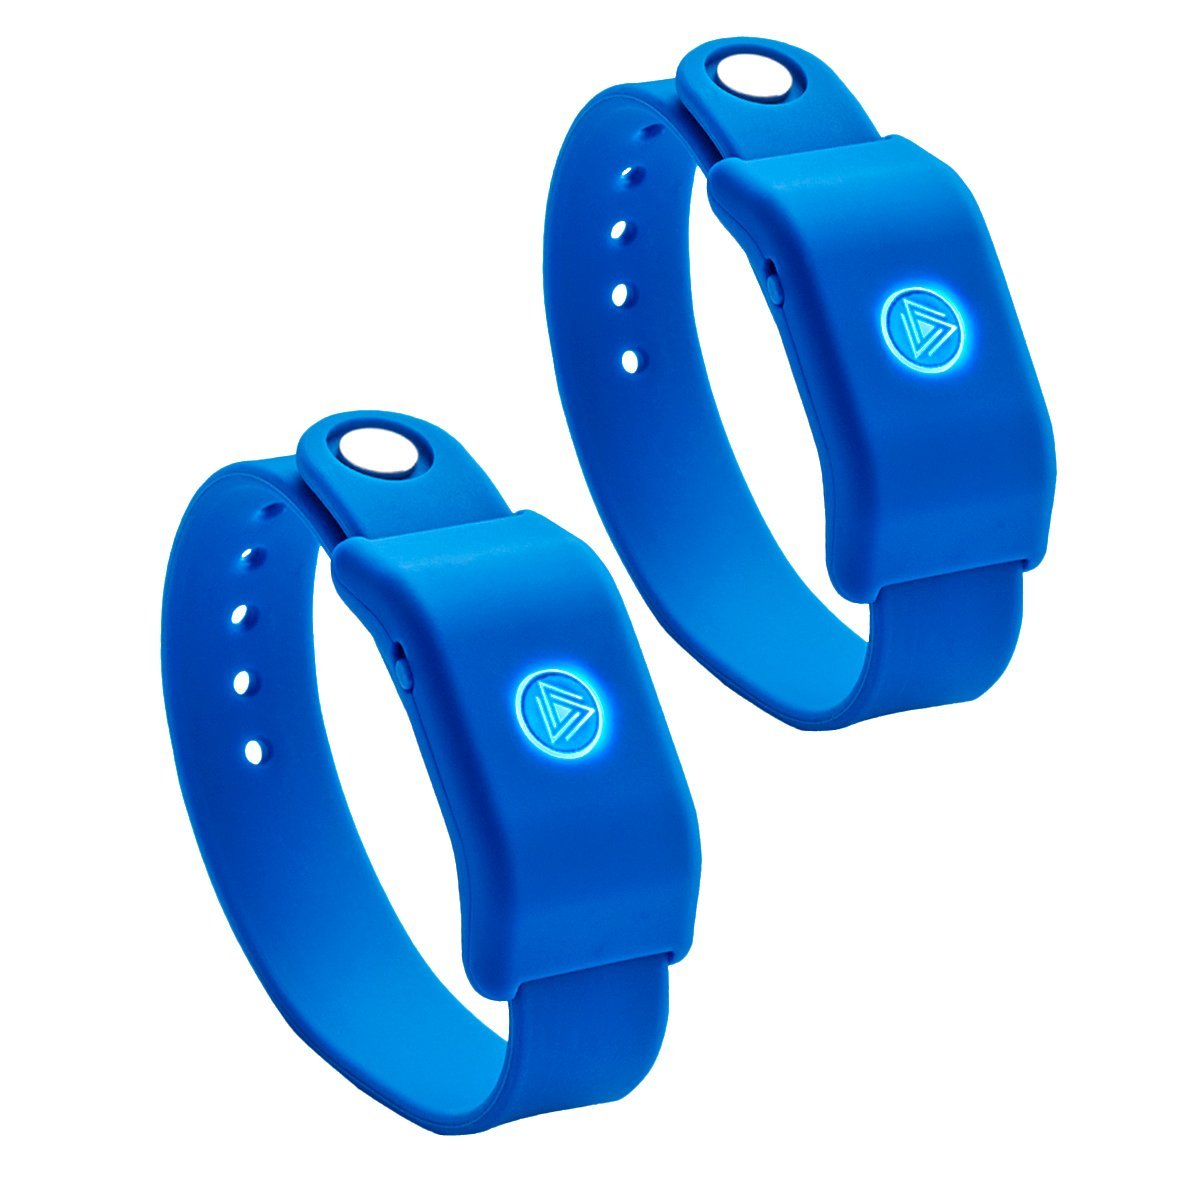 SoundMoovz Motion-Activated Muzical Bandz Blue (Dispatched From UK) by Character Options